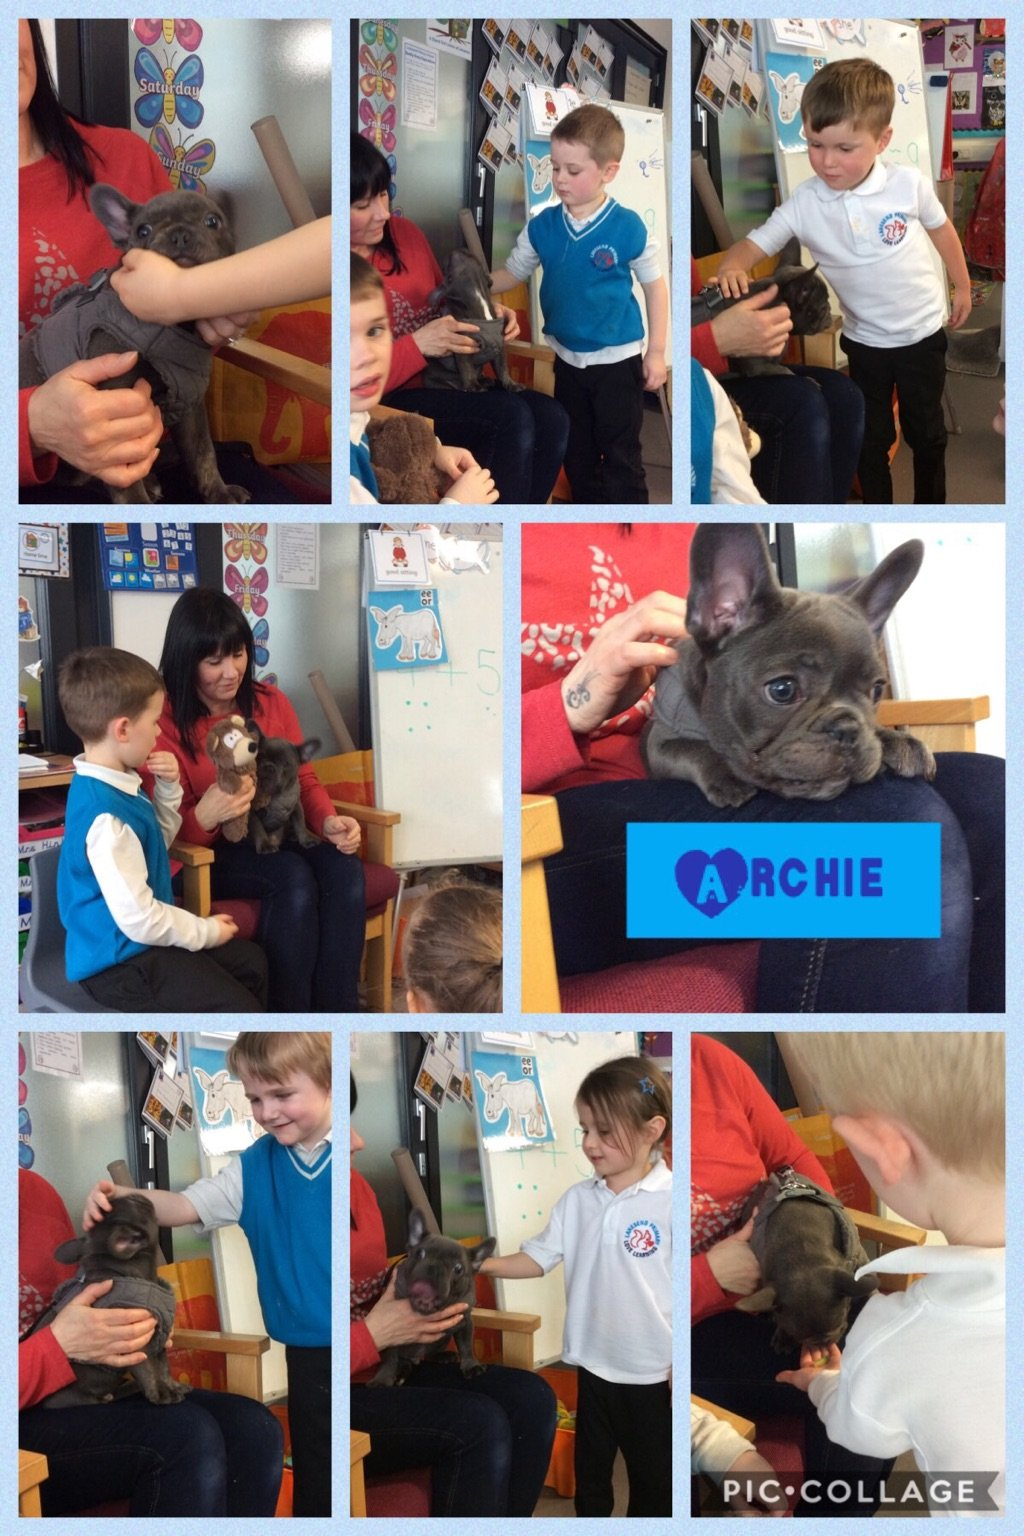 Reception had a visit from Archie the puppy!